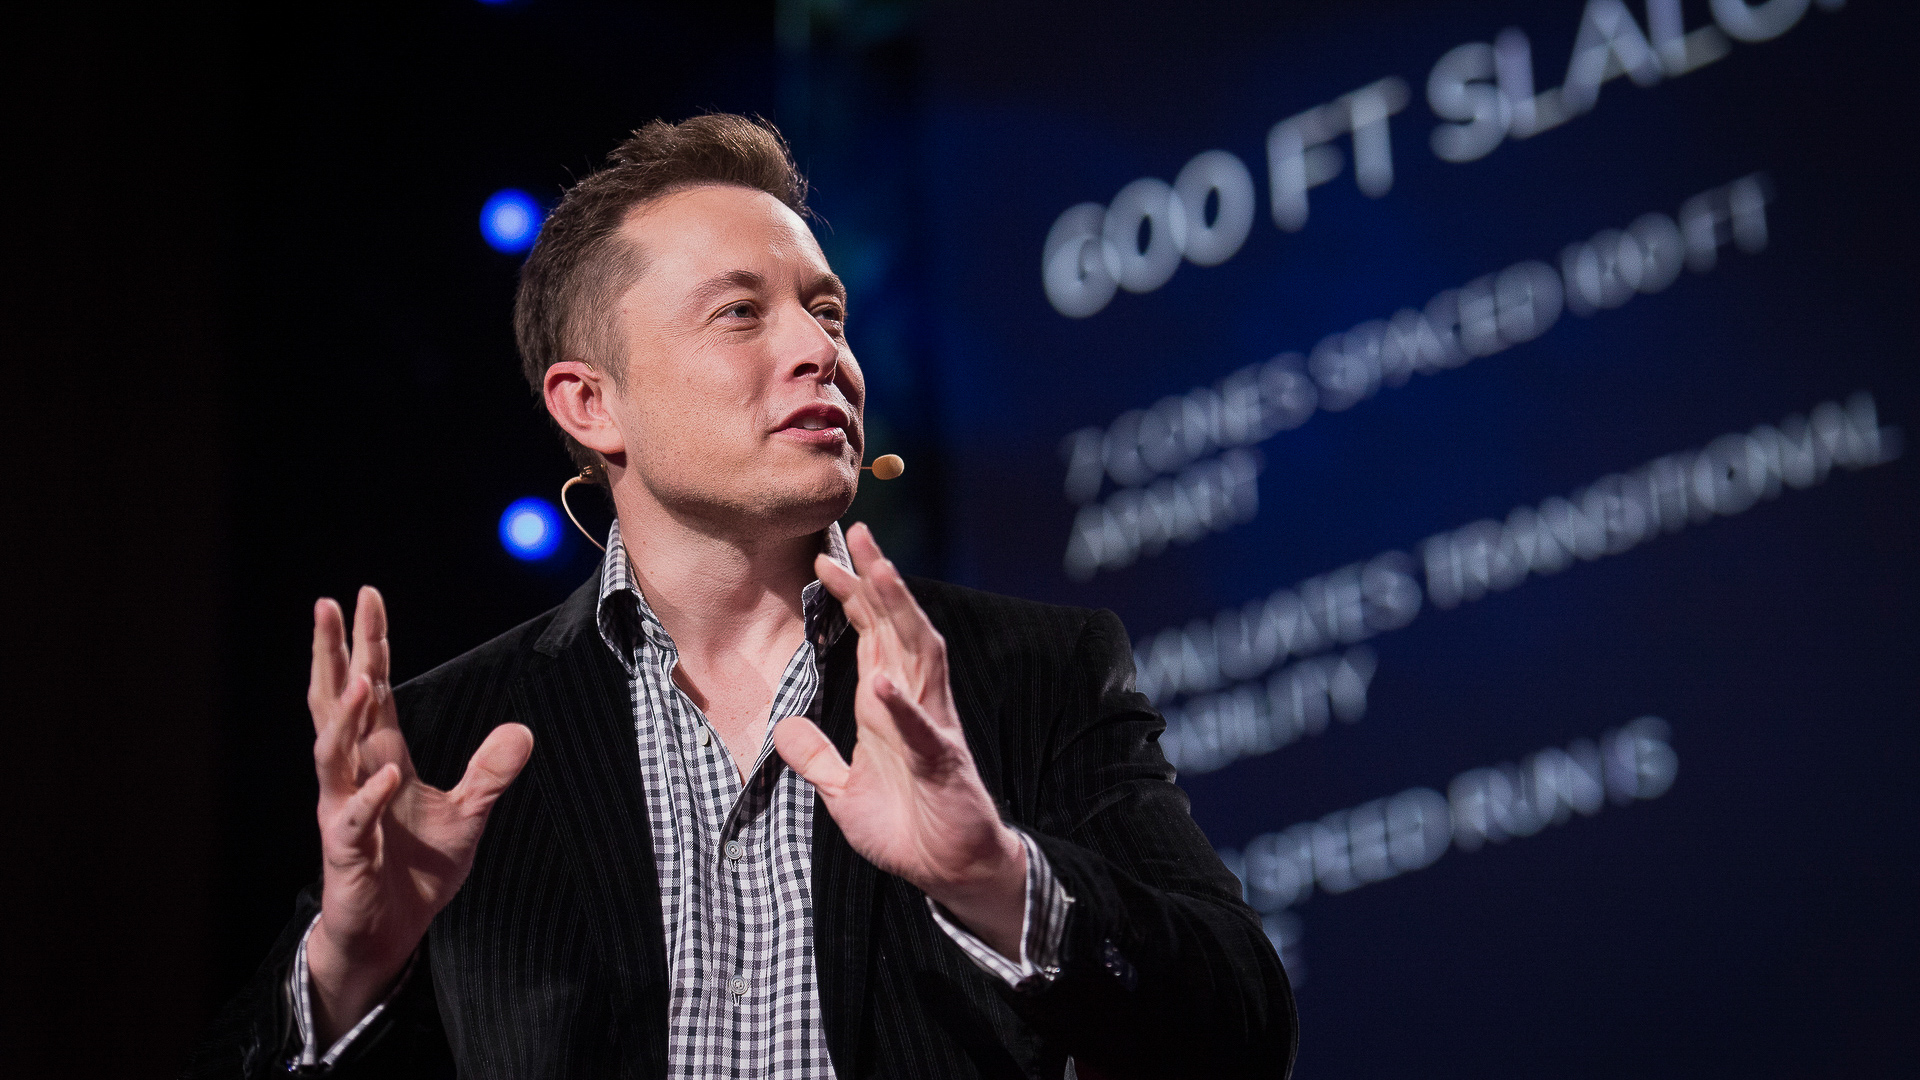 A year in finance for Elon Musk and other top business leaders